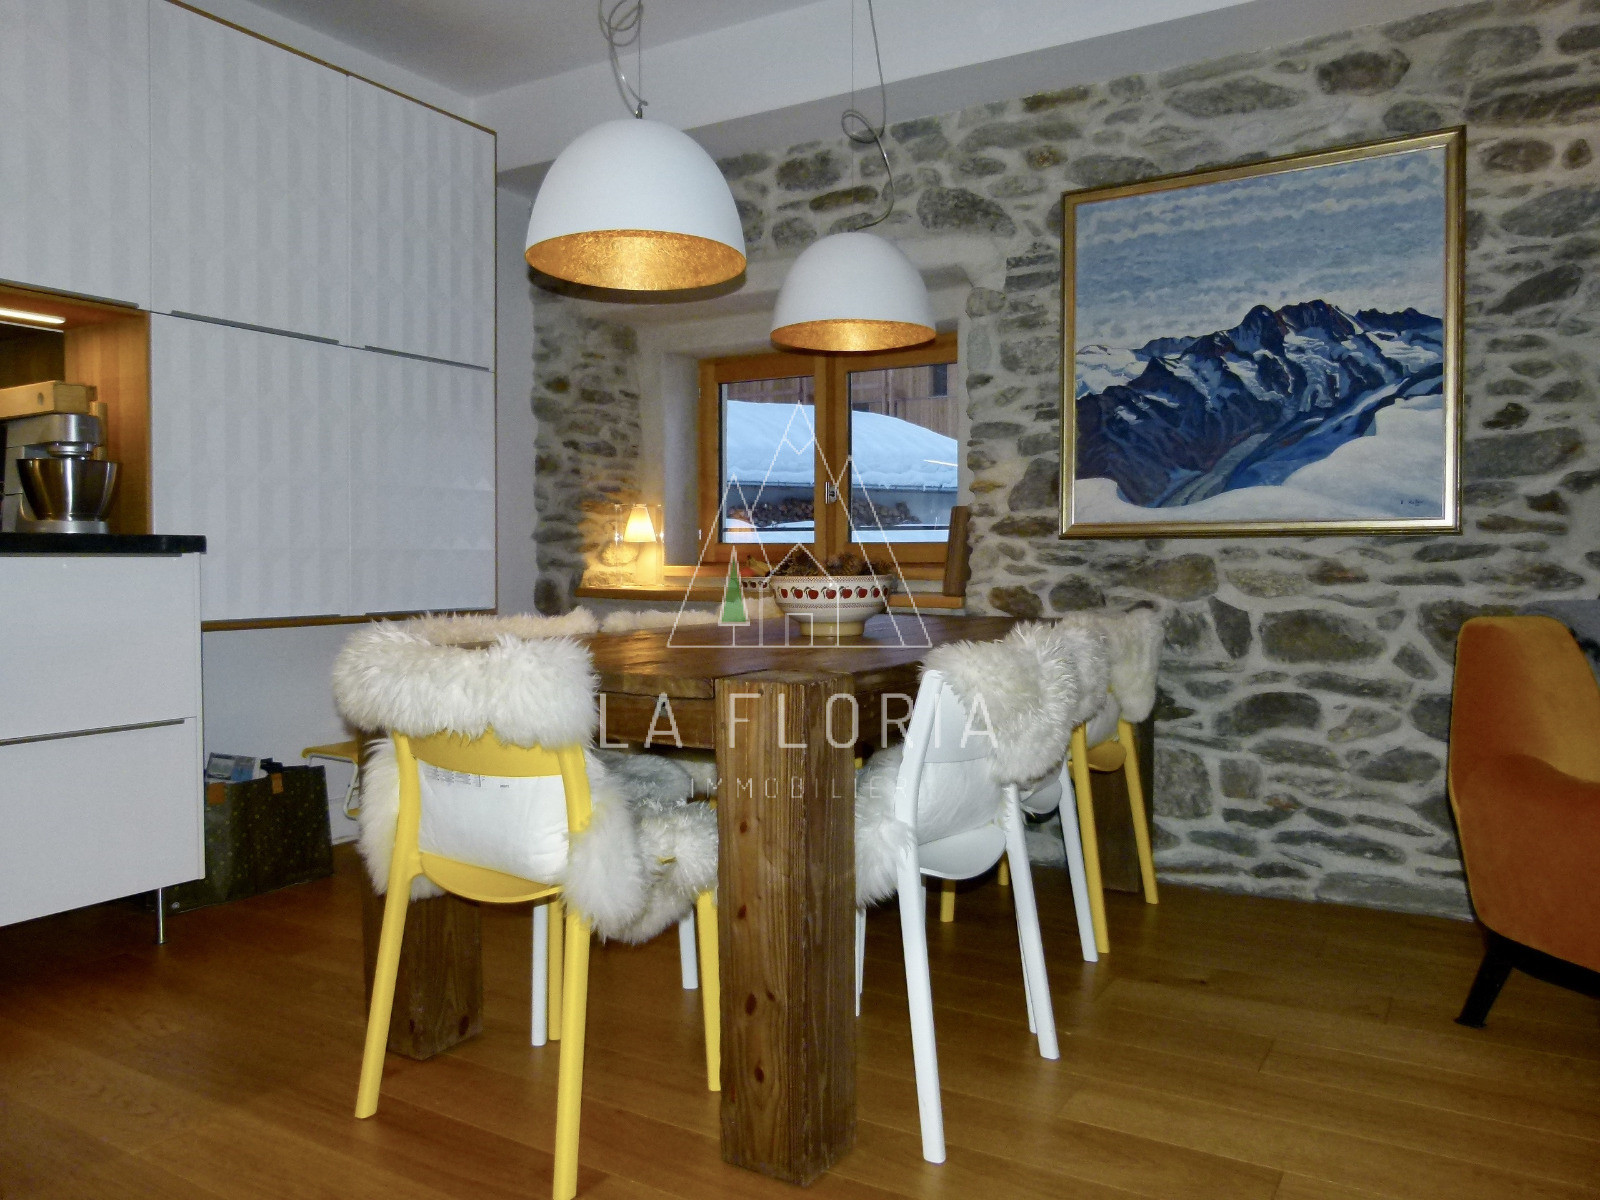 SUPERBLY REFURBISHED 3 BED / 3 BATH 104,64 m2 APARTMENT IN A FARMHOUSE, CHAMONIX